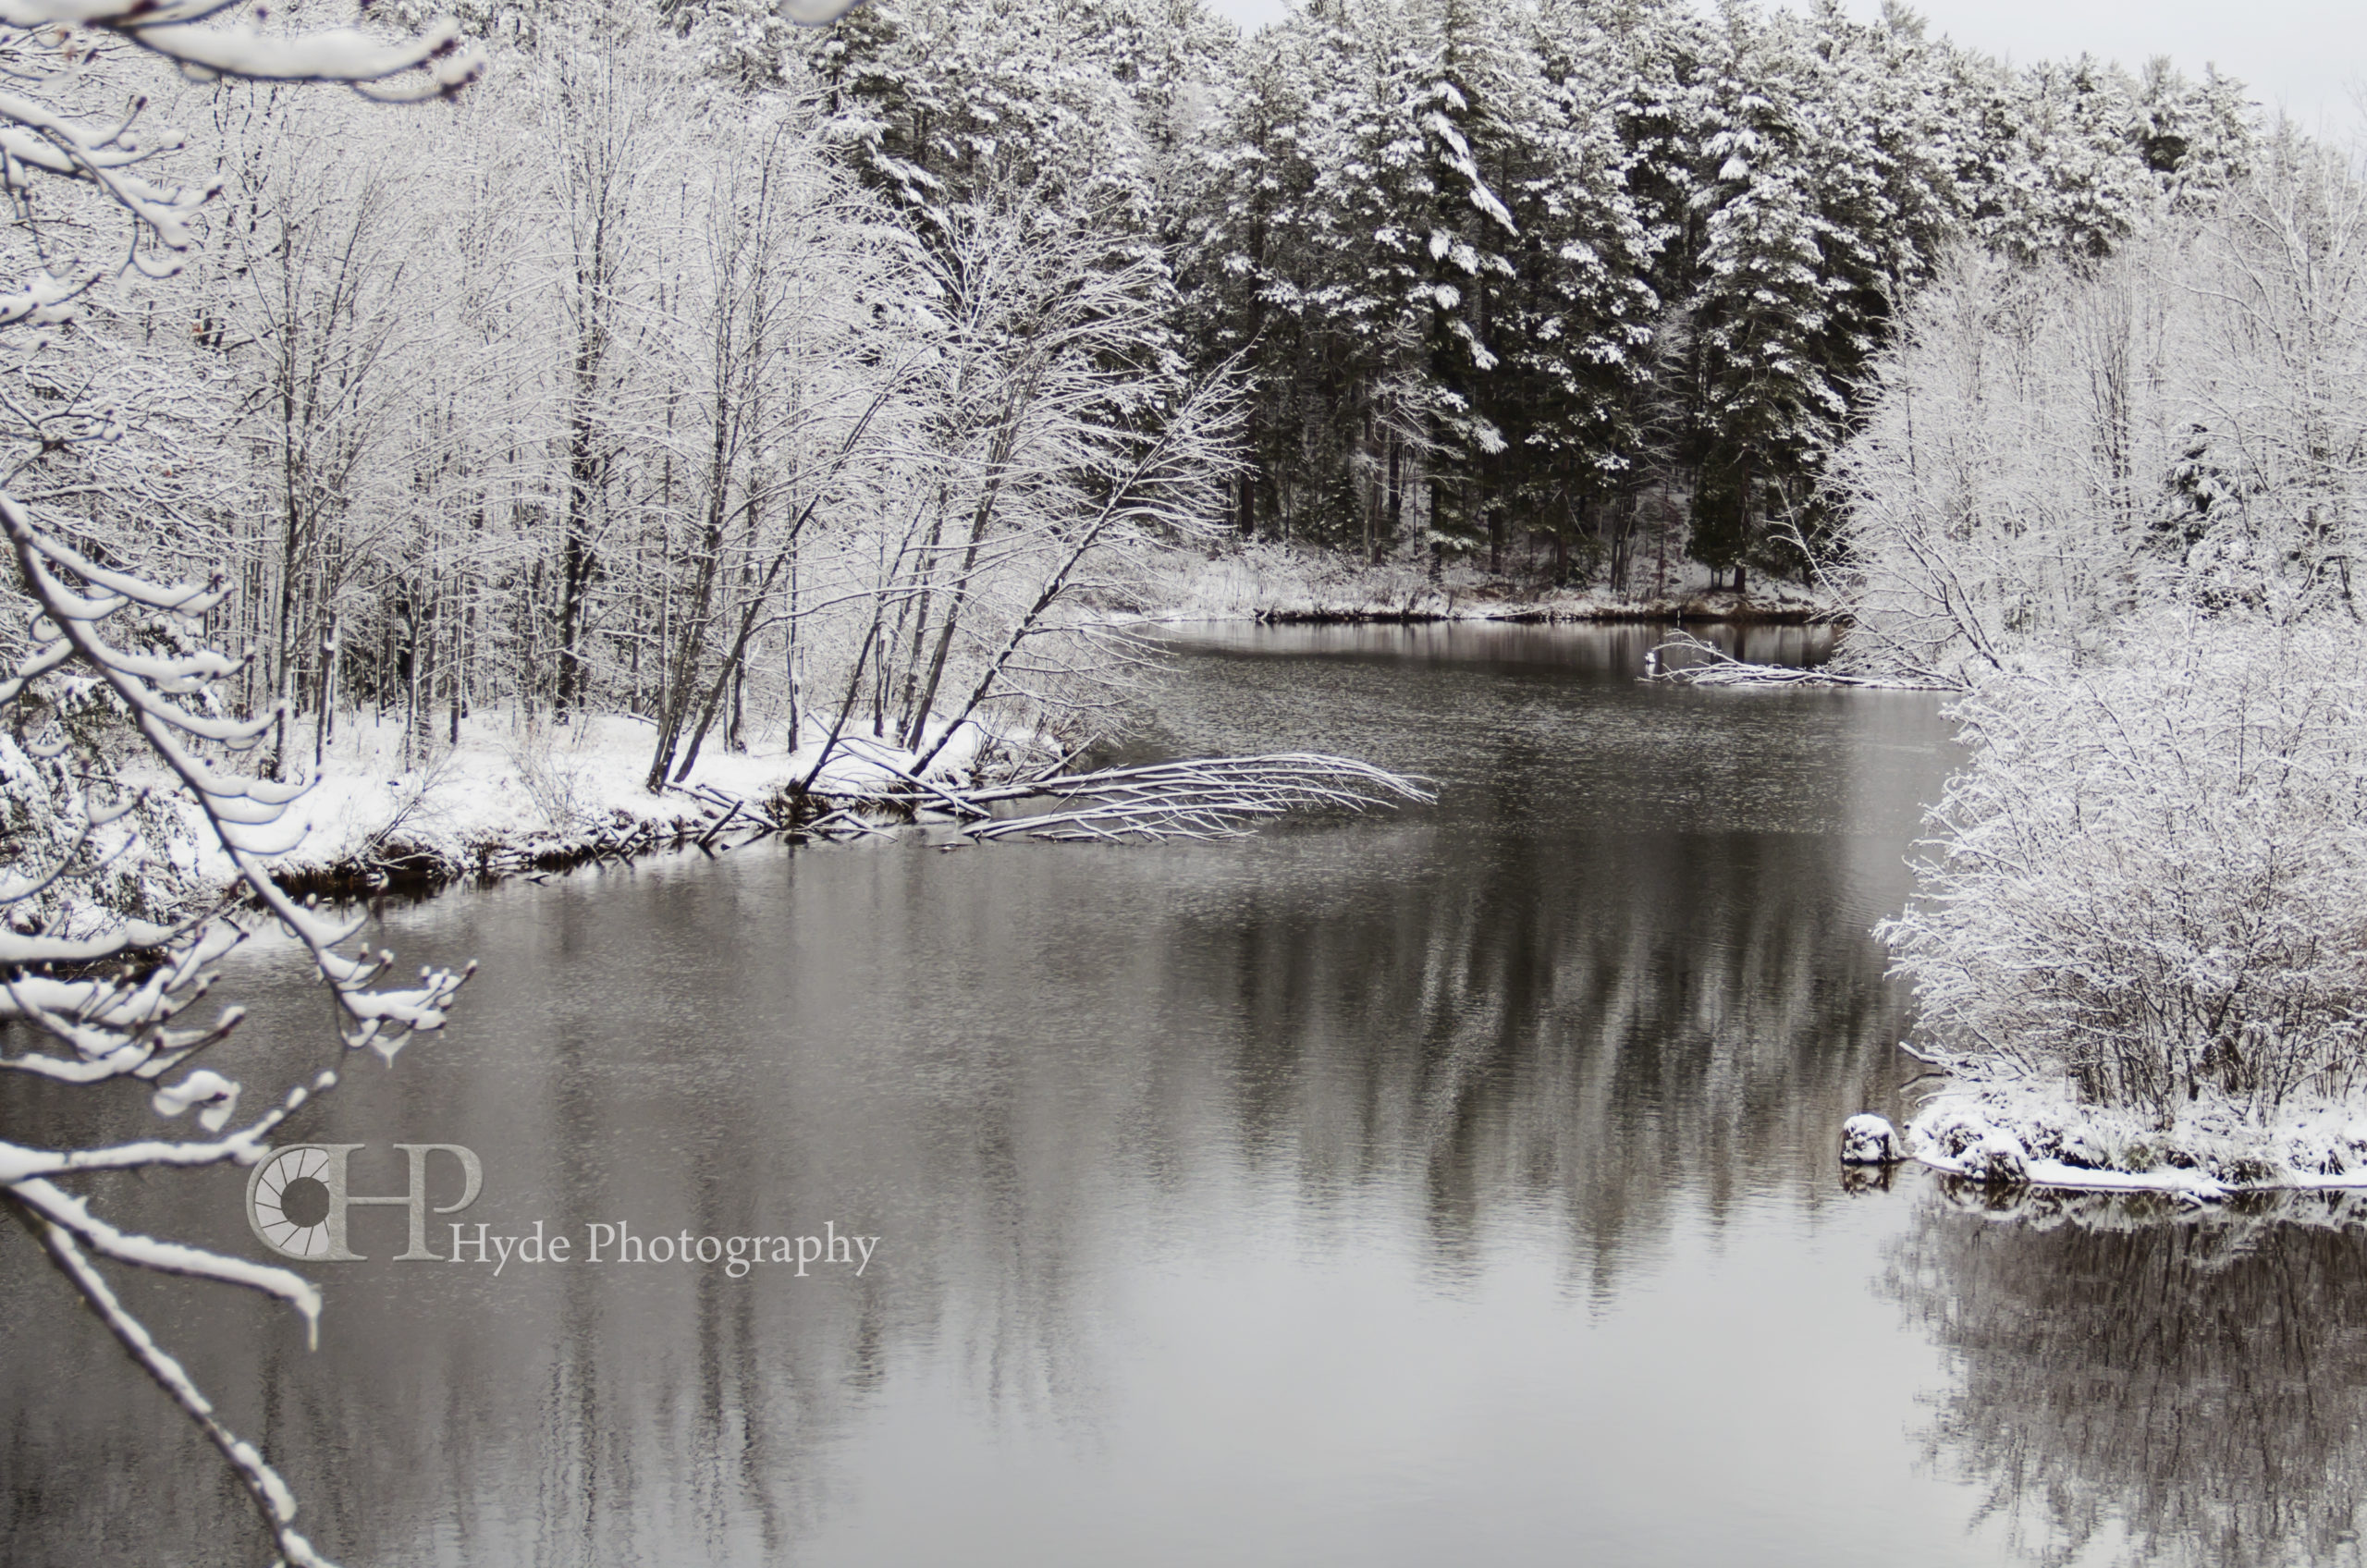 Snowy-river-scaled Attention to Detail in Snowy Scenes with MCP Actions